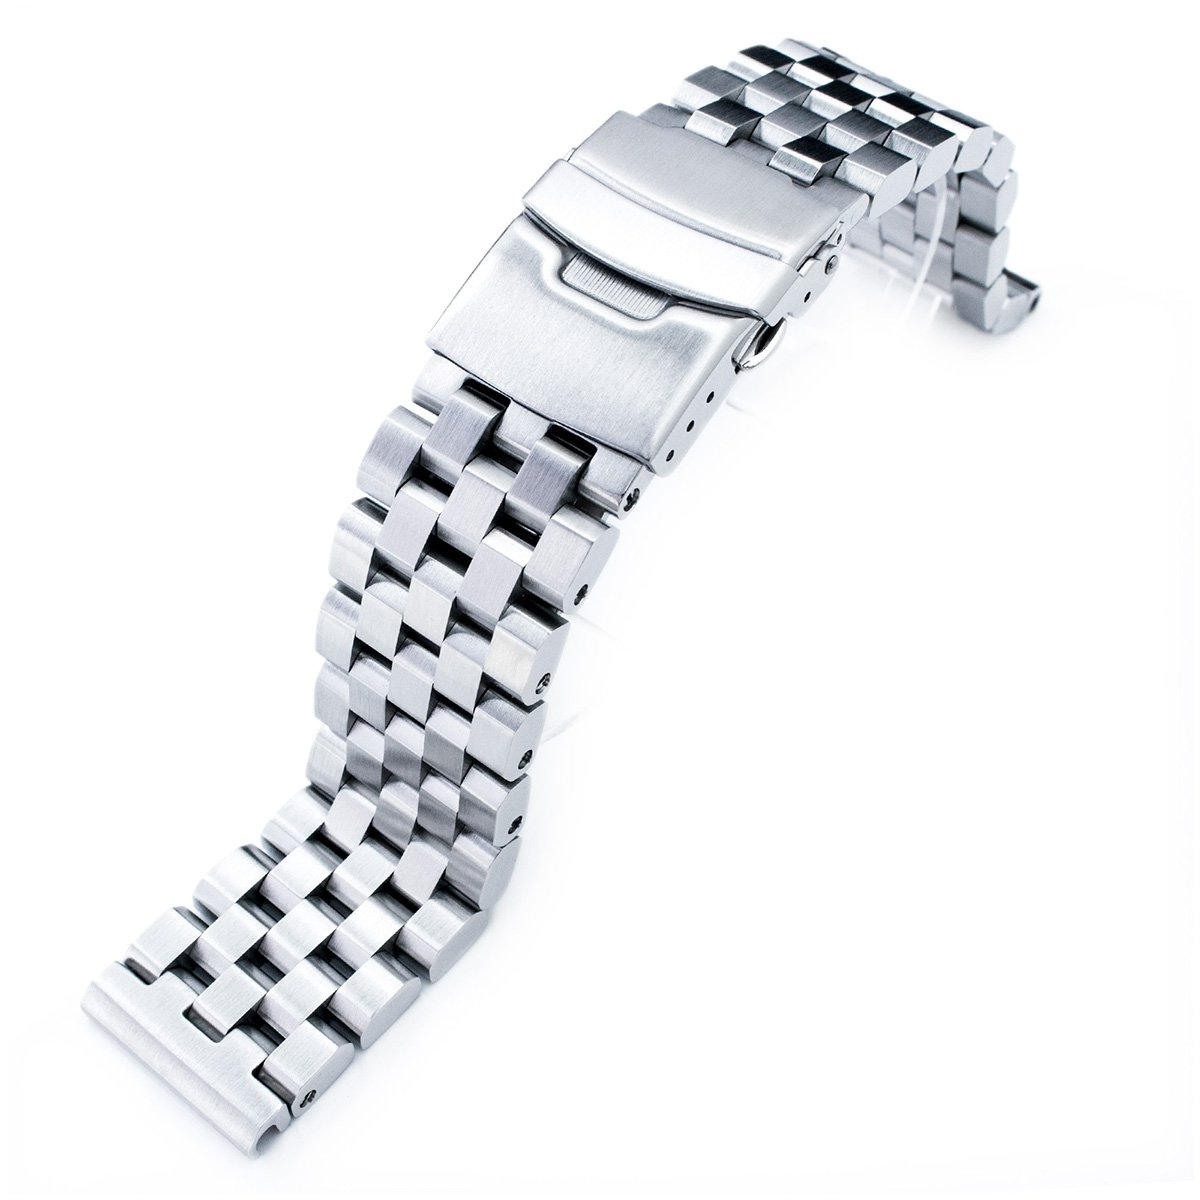 22mm SUPER Engineer II 316L Stainless Steel Straight End Watch Bracelet by 22mm Metal Band by MiLTAT